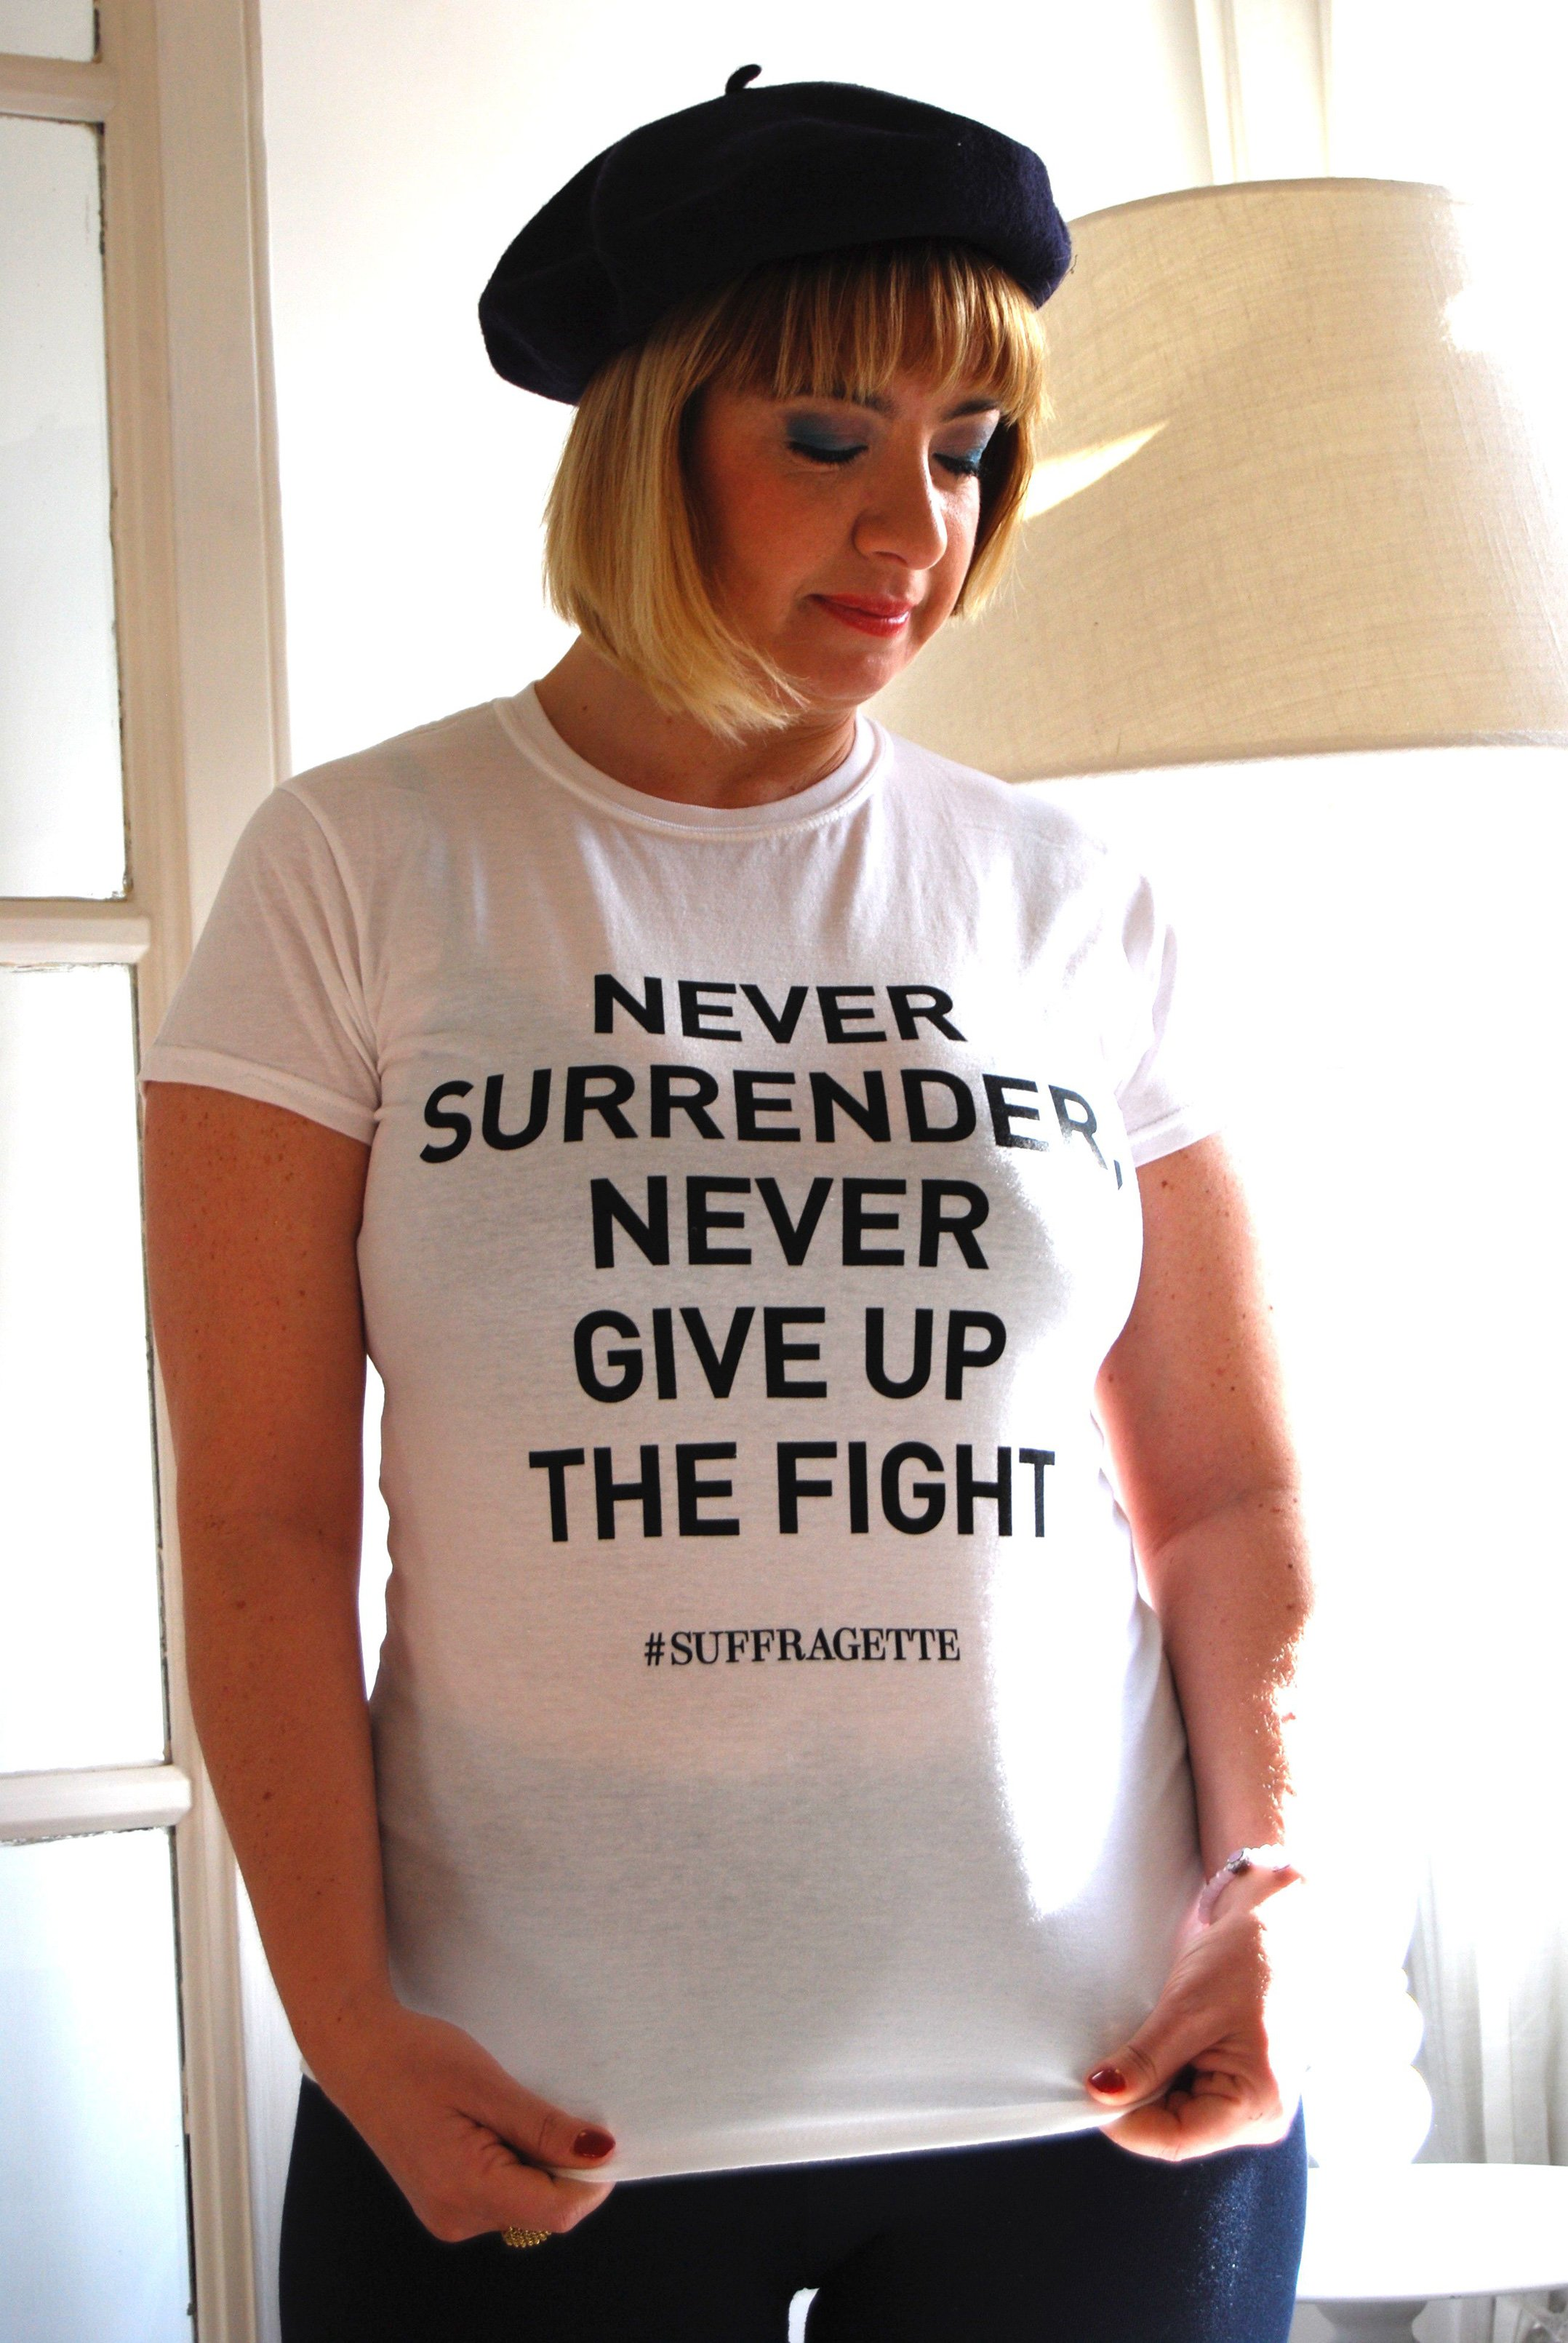 La t-shirt Suffragette